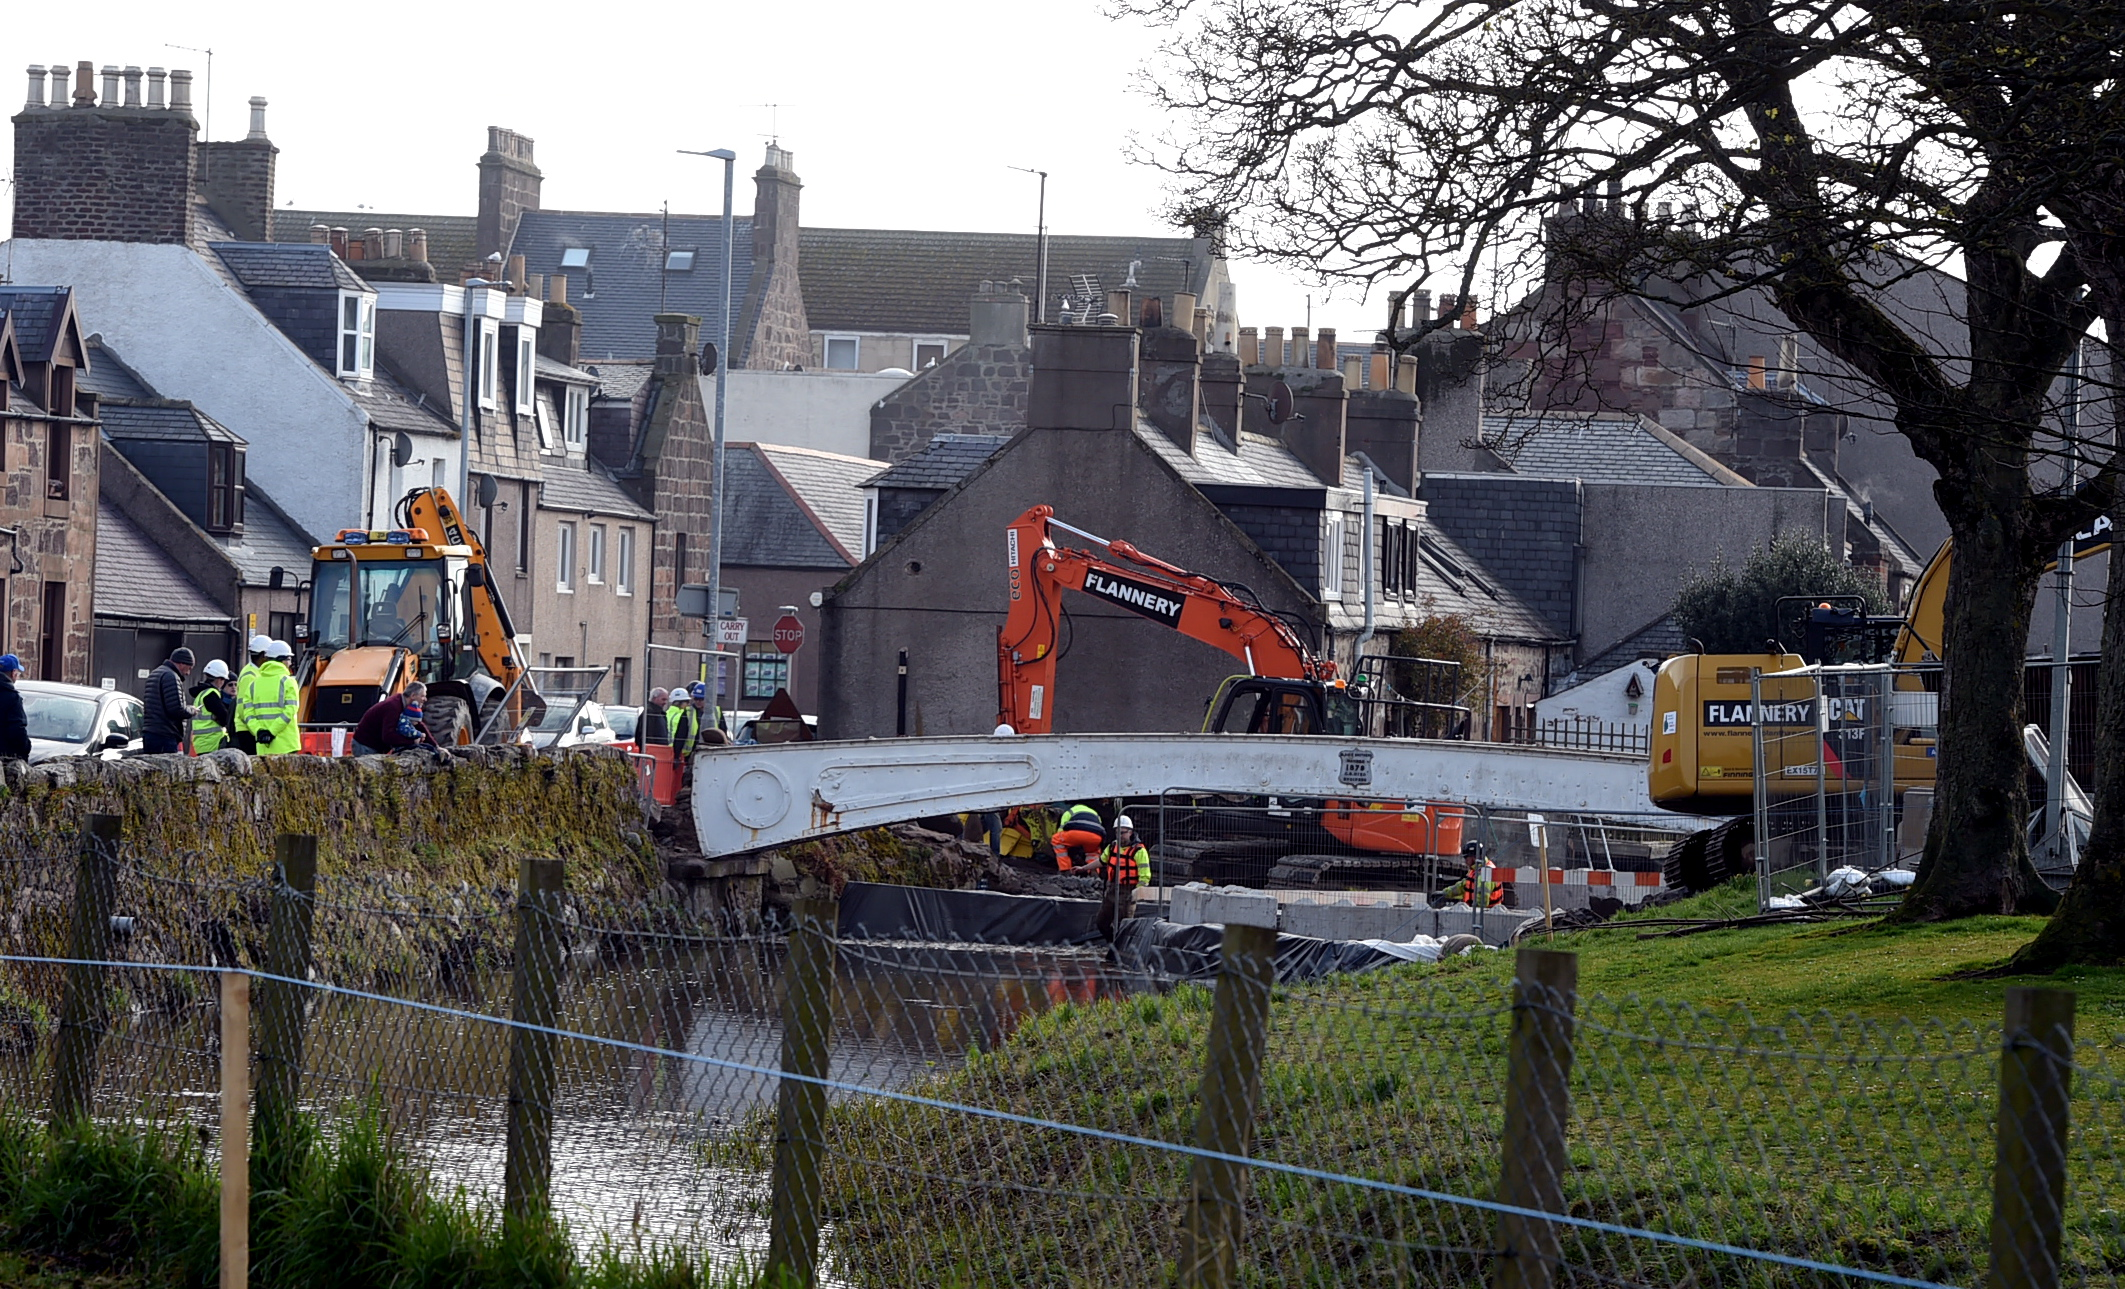 The White Bridge in Stonehaven being removed at Cameron Street/Ann Street junction